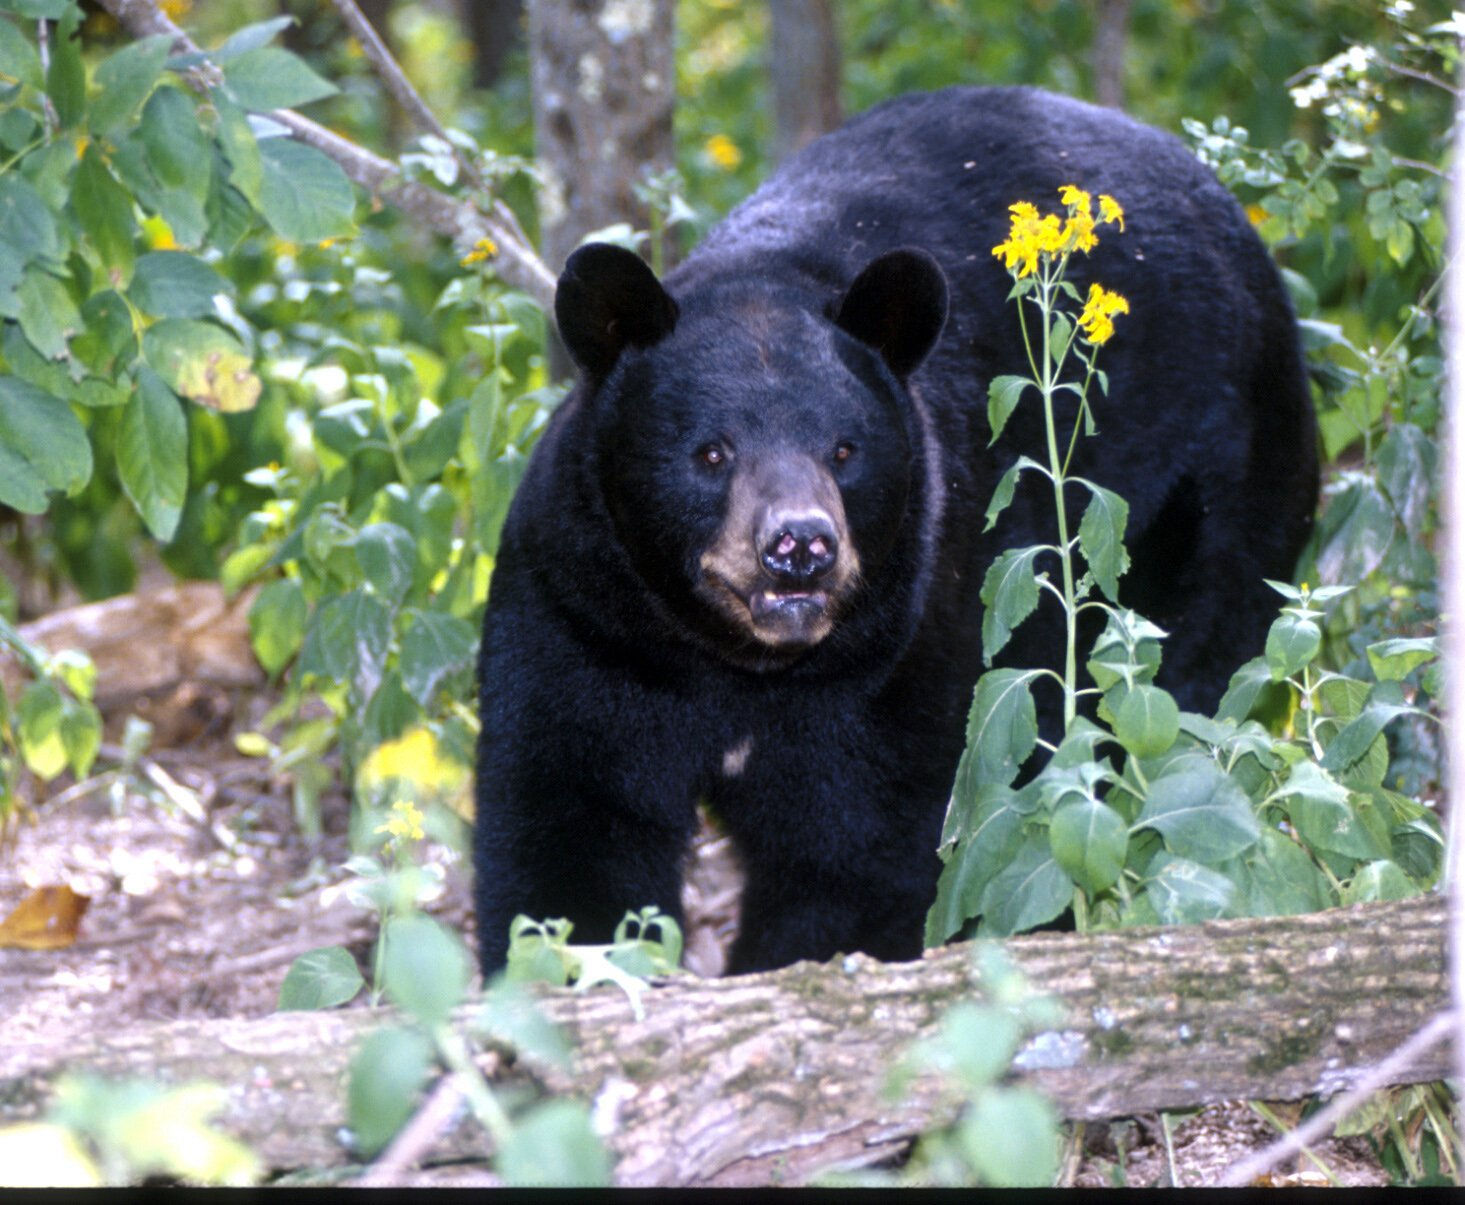 How many species of bears exist in nature